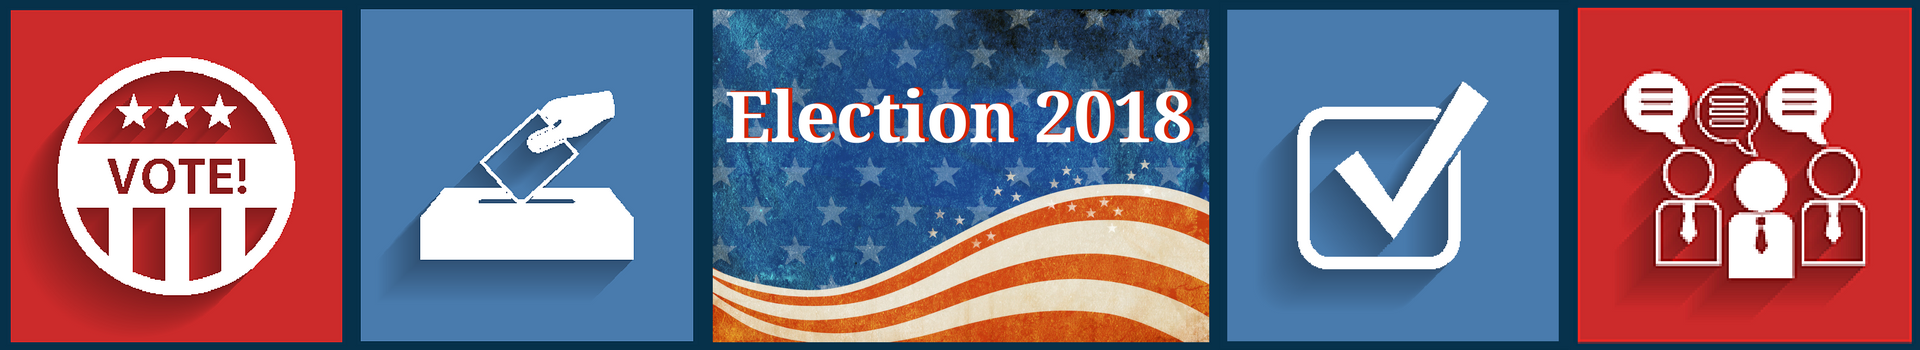 Sacramento County GOP 2018 Election Voter Guide